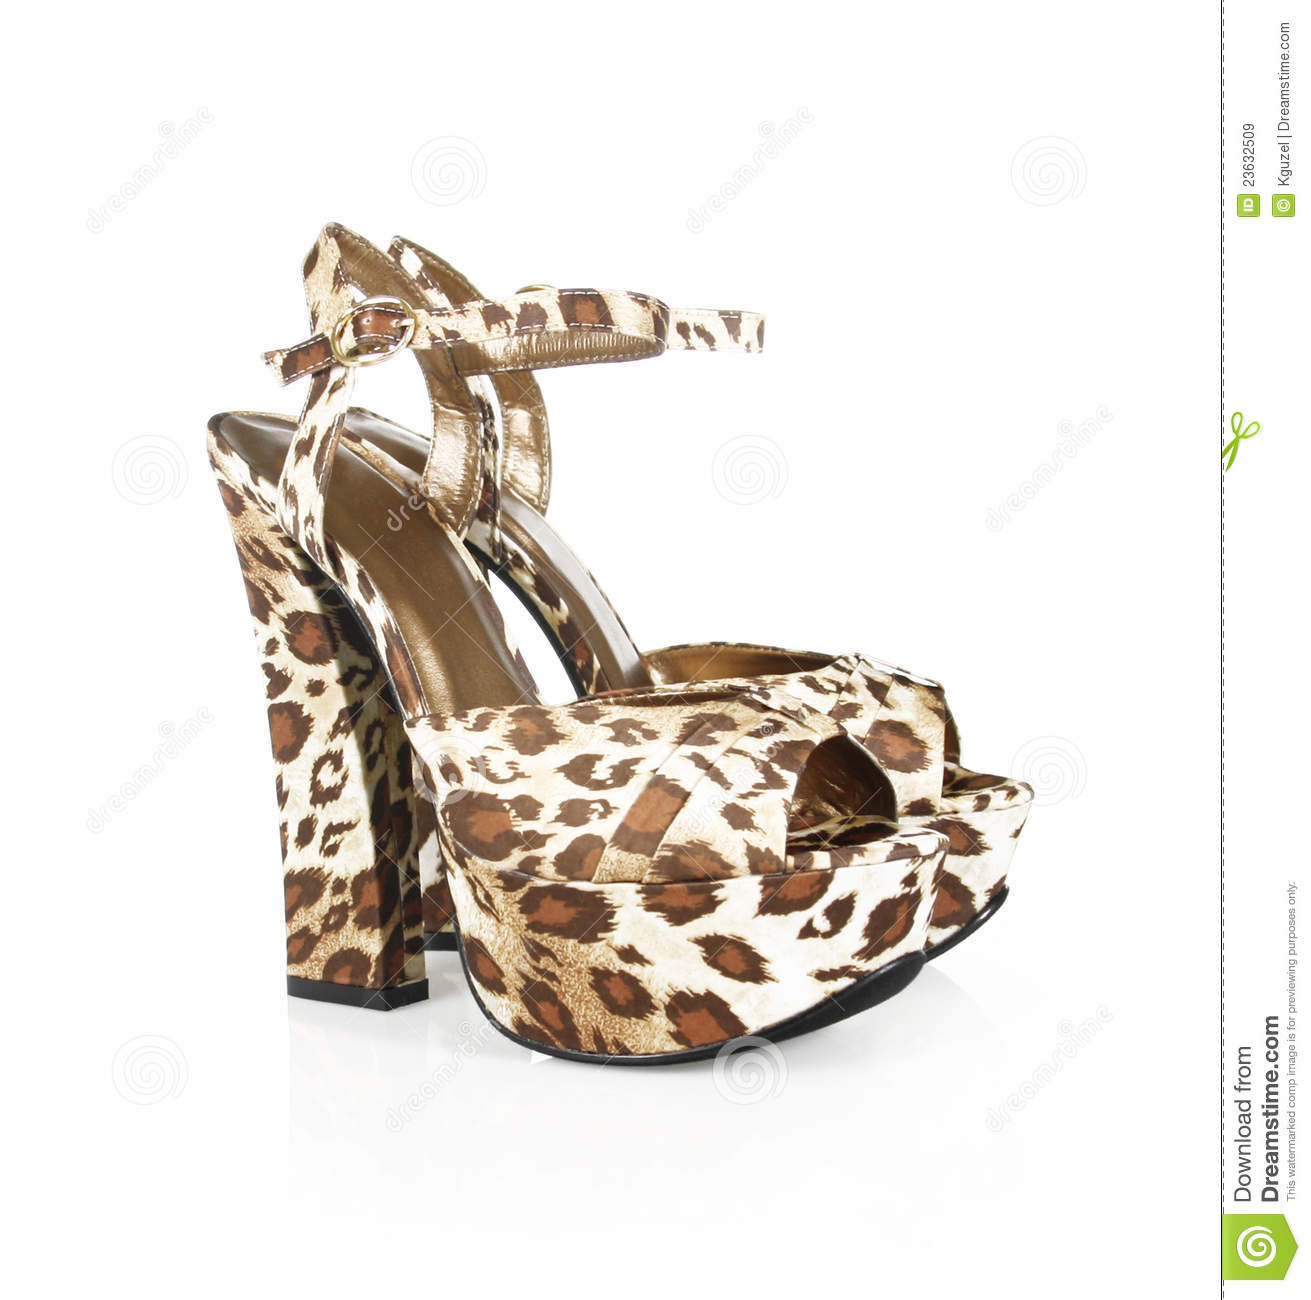 leopard high heel chair steel garden design sexy print shoes royalty free stock images image